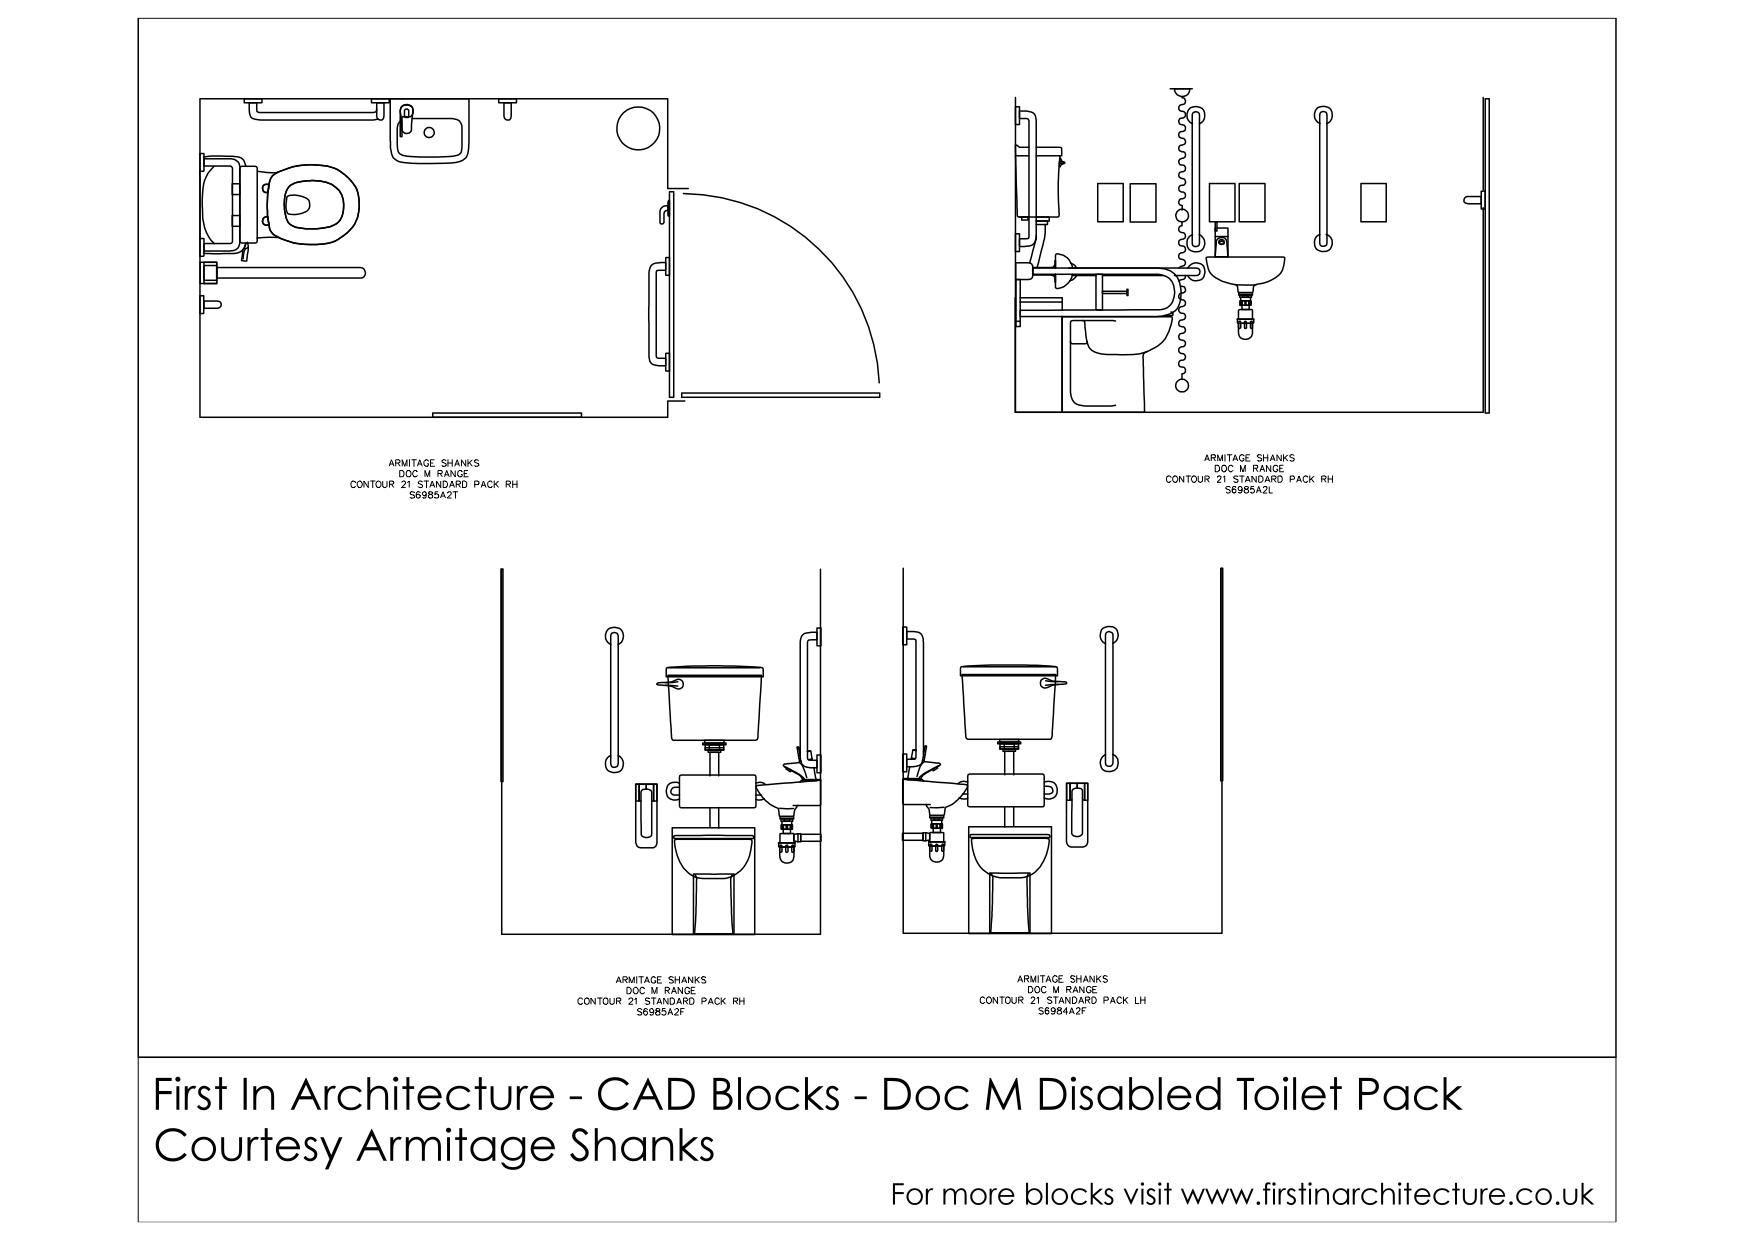 Bathtub Front Elevation : Free cad blocks doc m disabled toilet